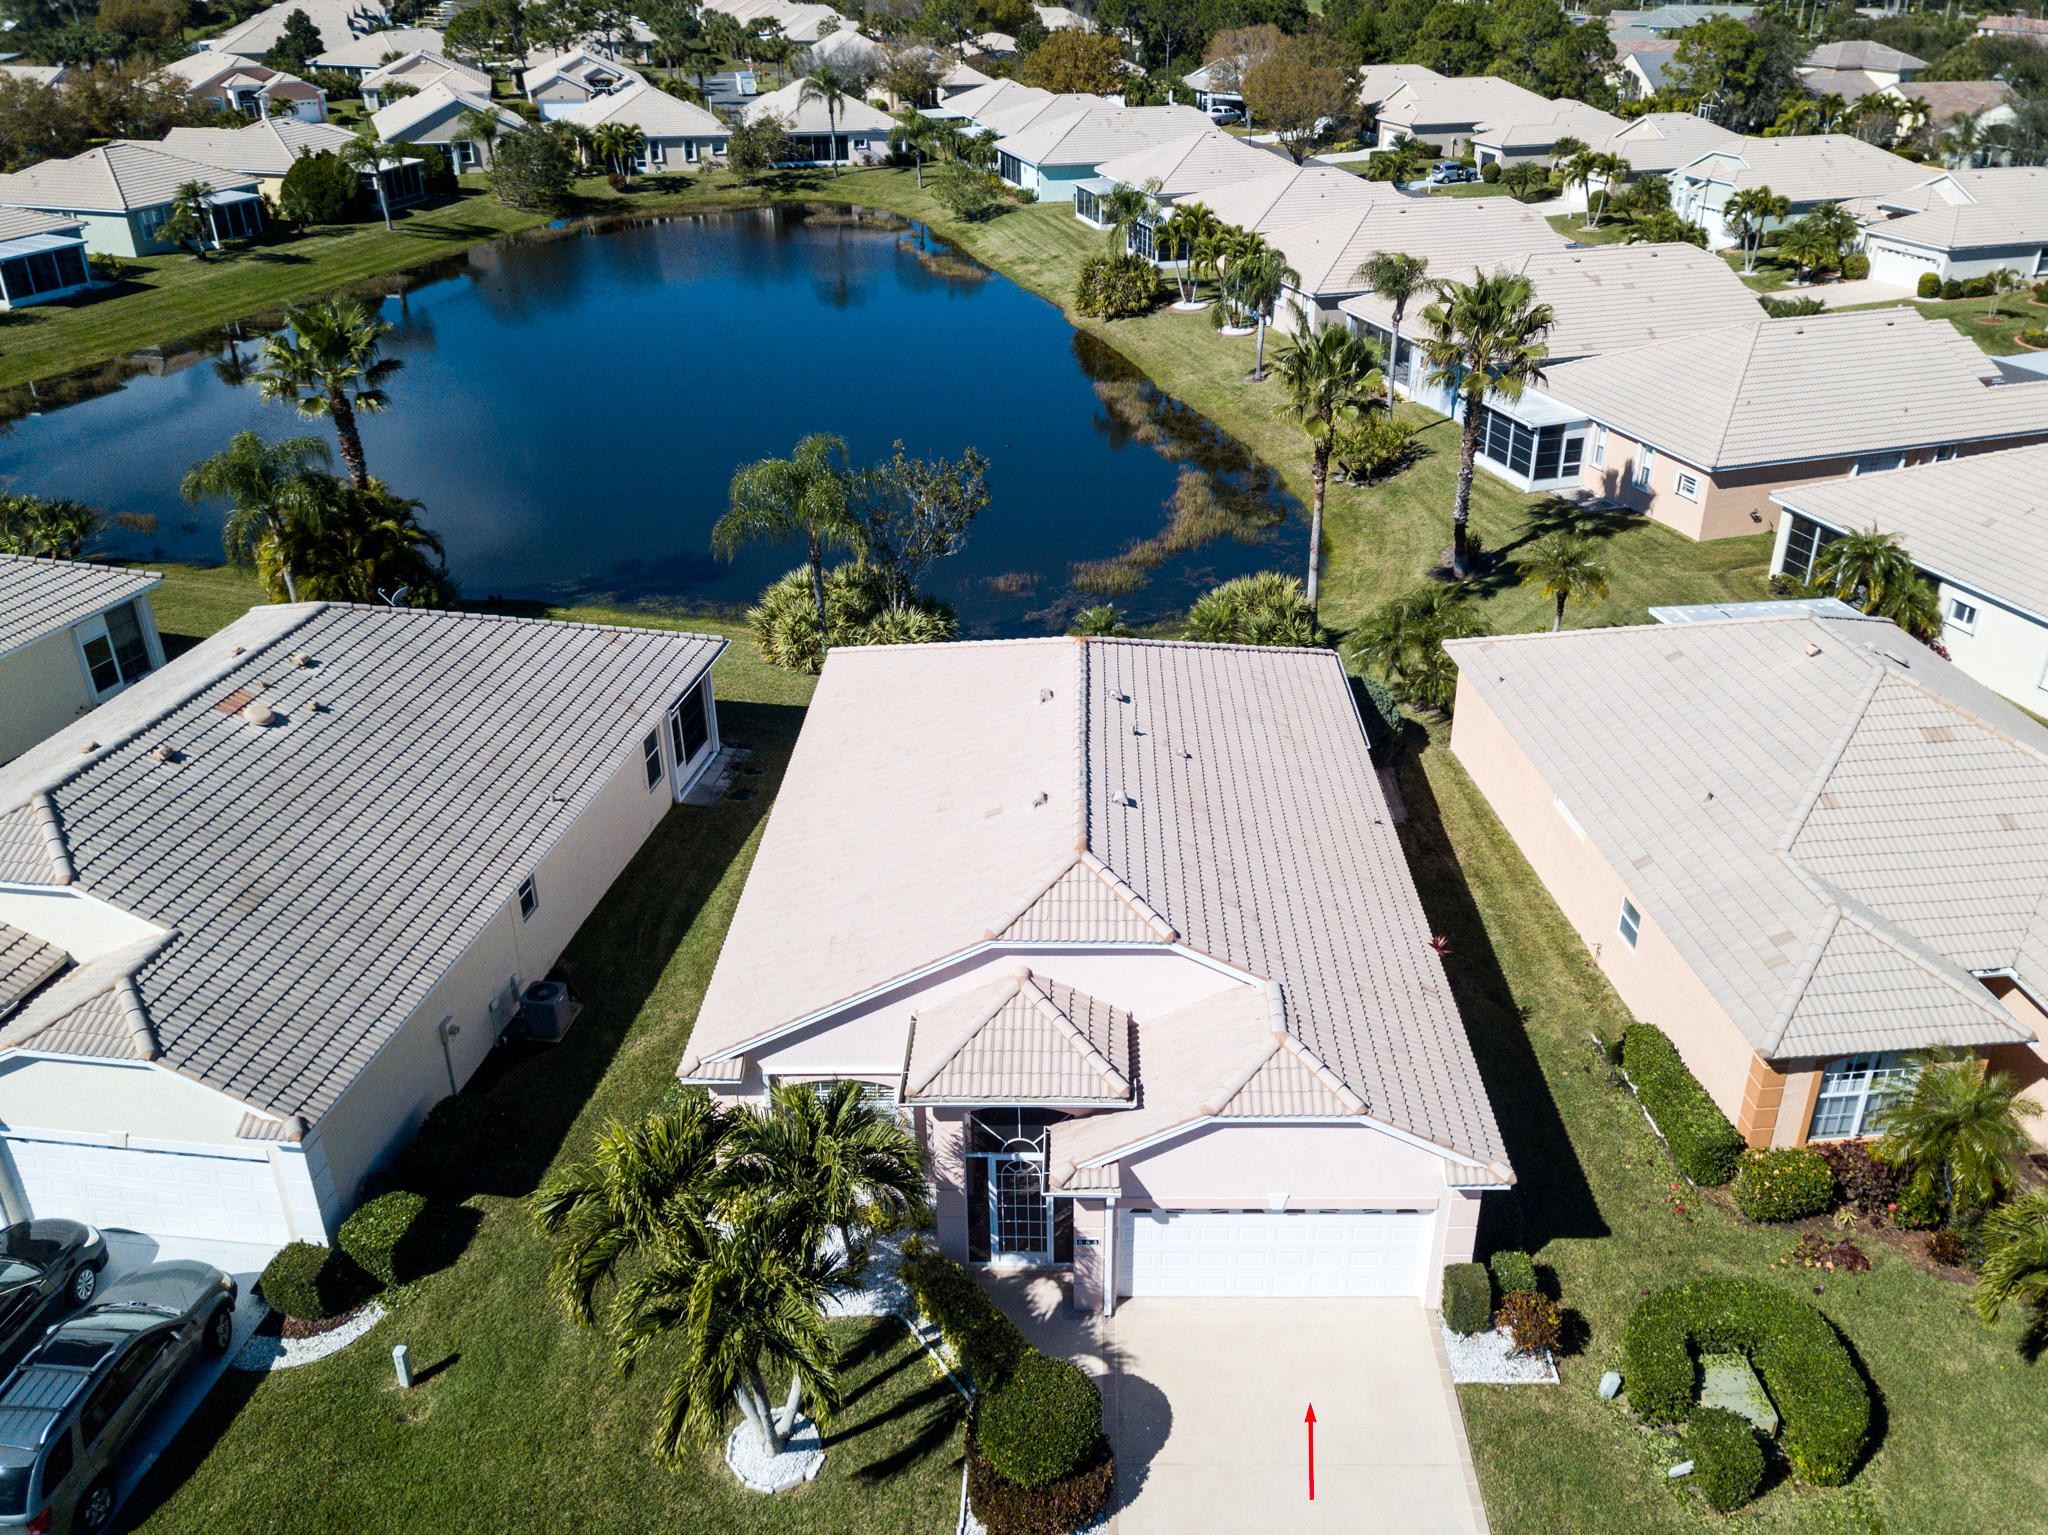 865 Nw Sorrento Lane, Port Saint Lucie, FL 34986